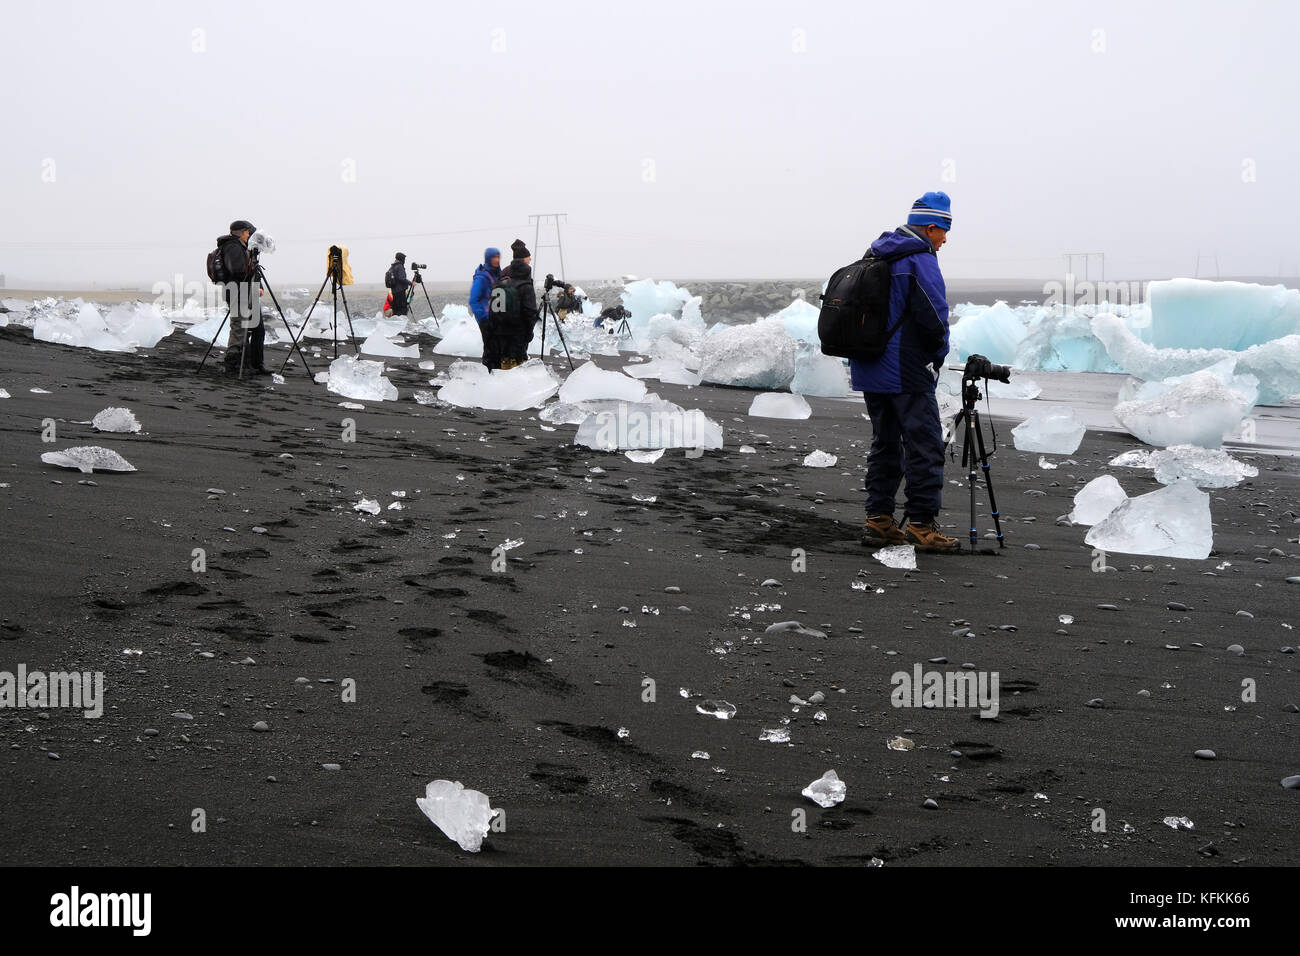 Photographers on photo tour with cameras and tripods standing and photographing icebergs washed up on black sand - Stock Image